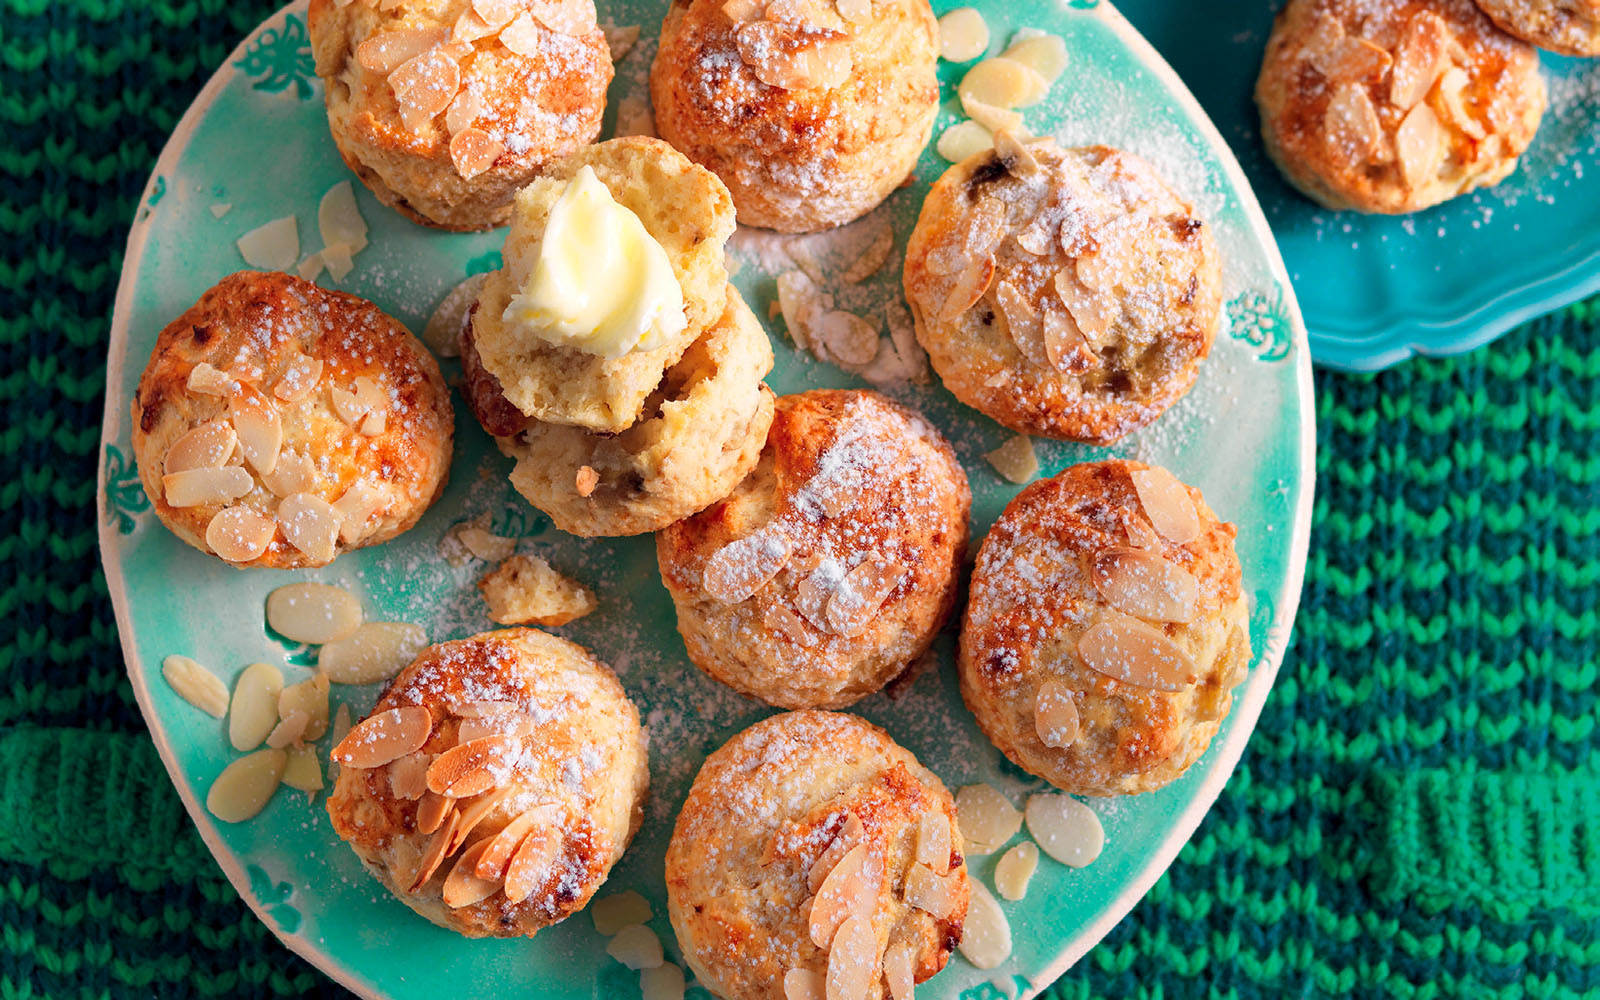 Scone recipe with bananas and almonds